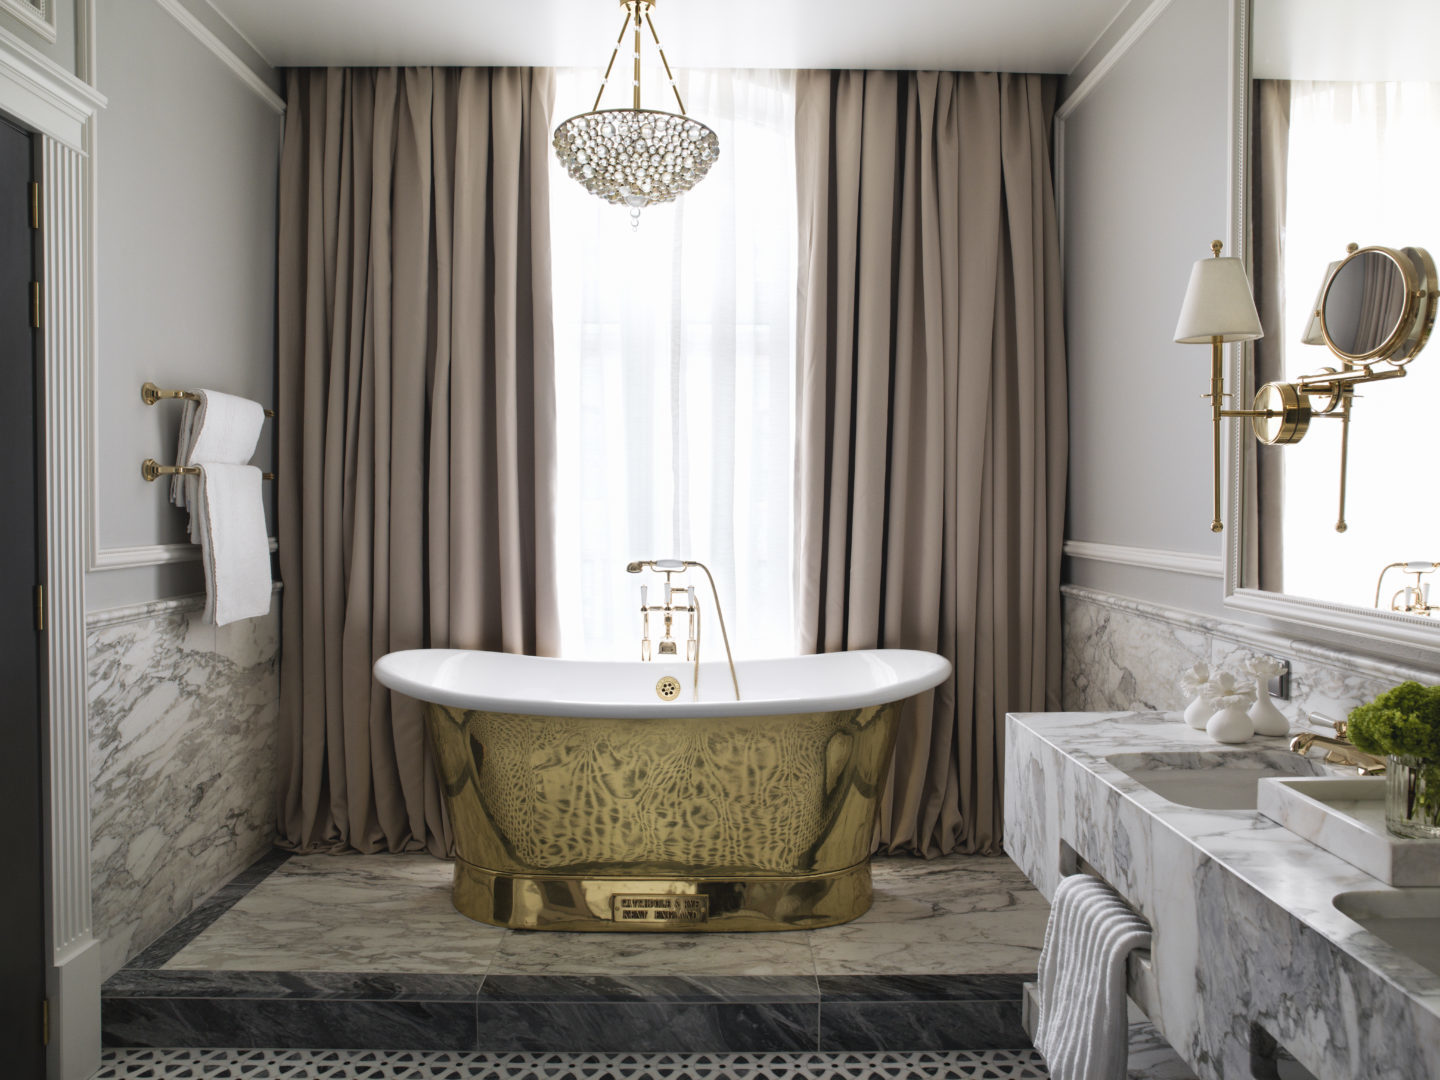 Britannia Hotel in Trondheim's Signature Suite styled by Metropolis Interior Architects. Master en-suite bathroom. Gold plated bath tub by Catchpole & Rye, from Kent in England.